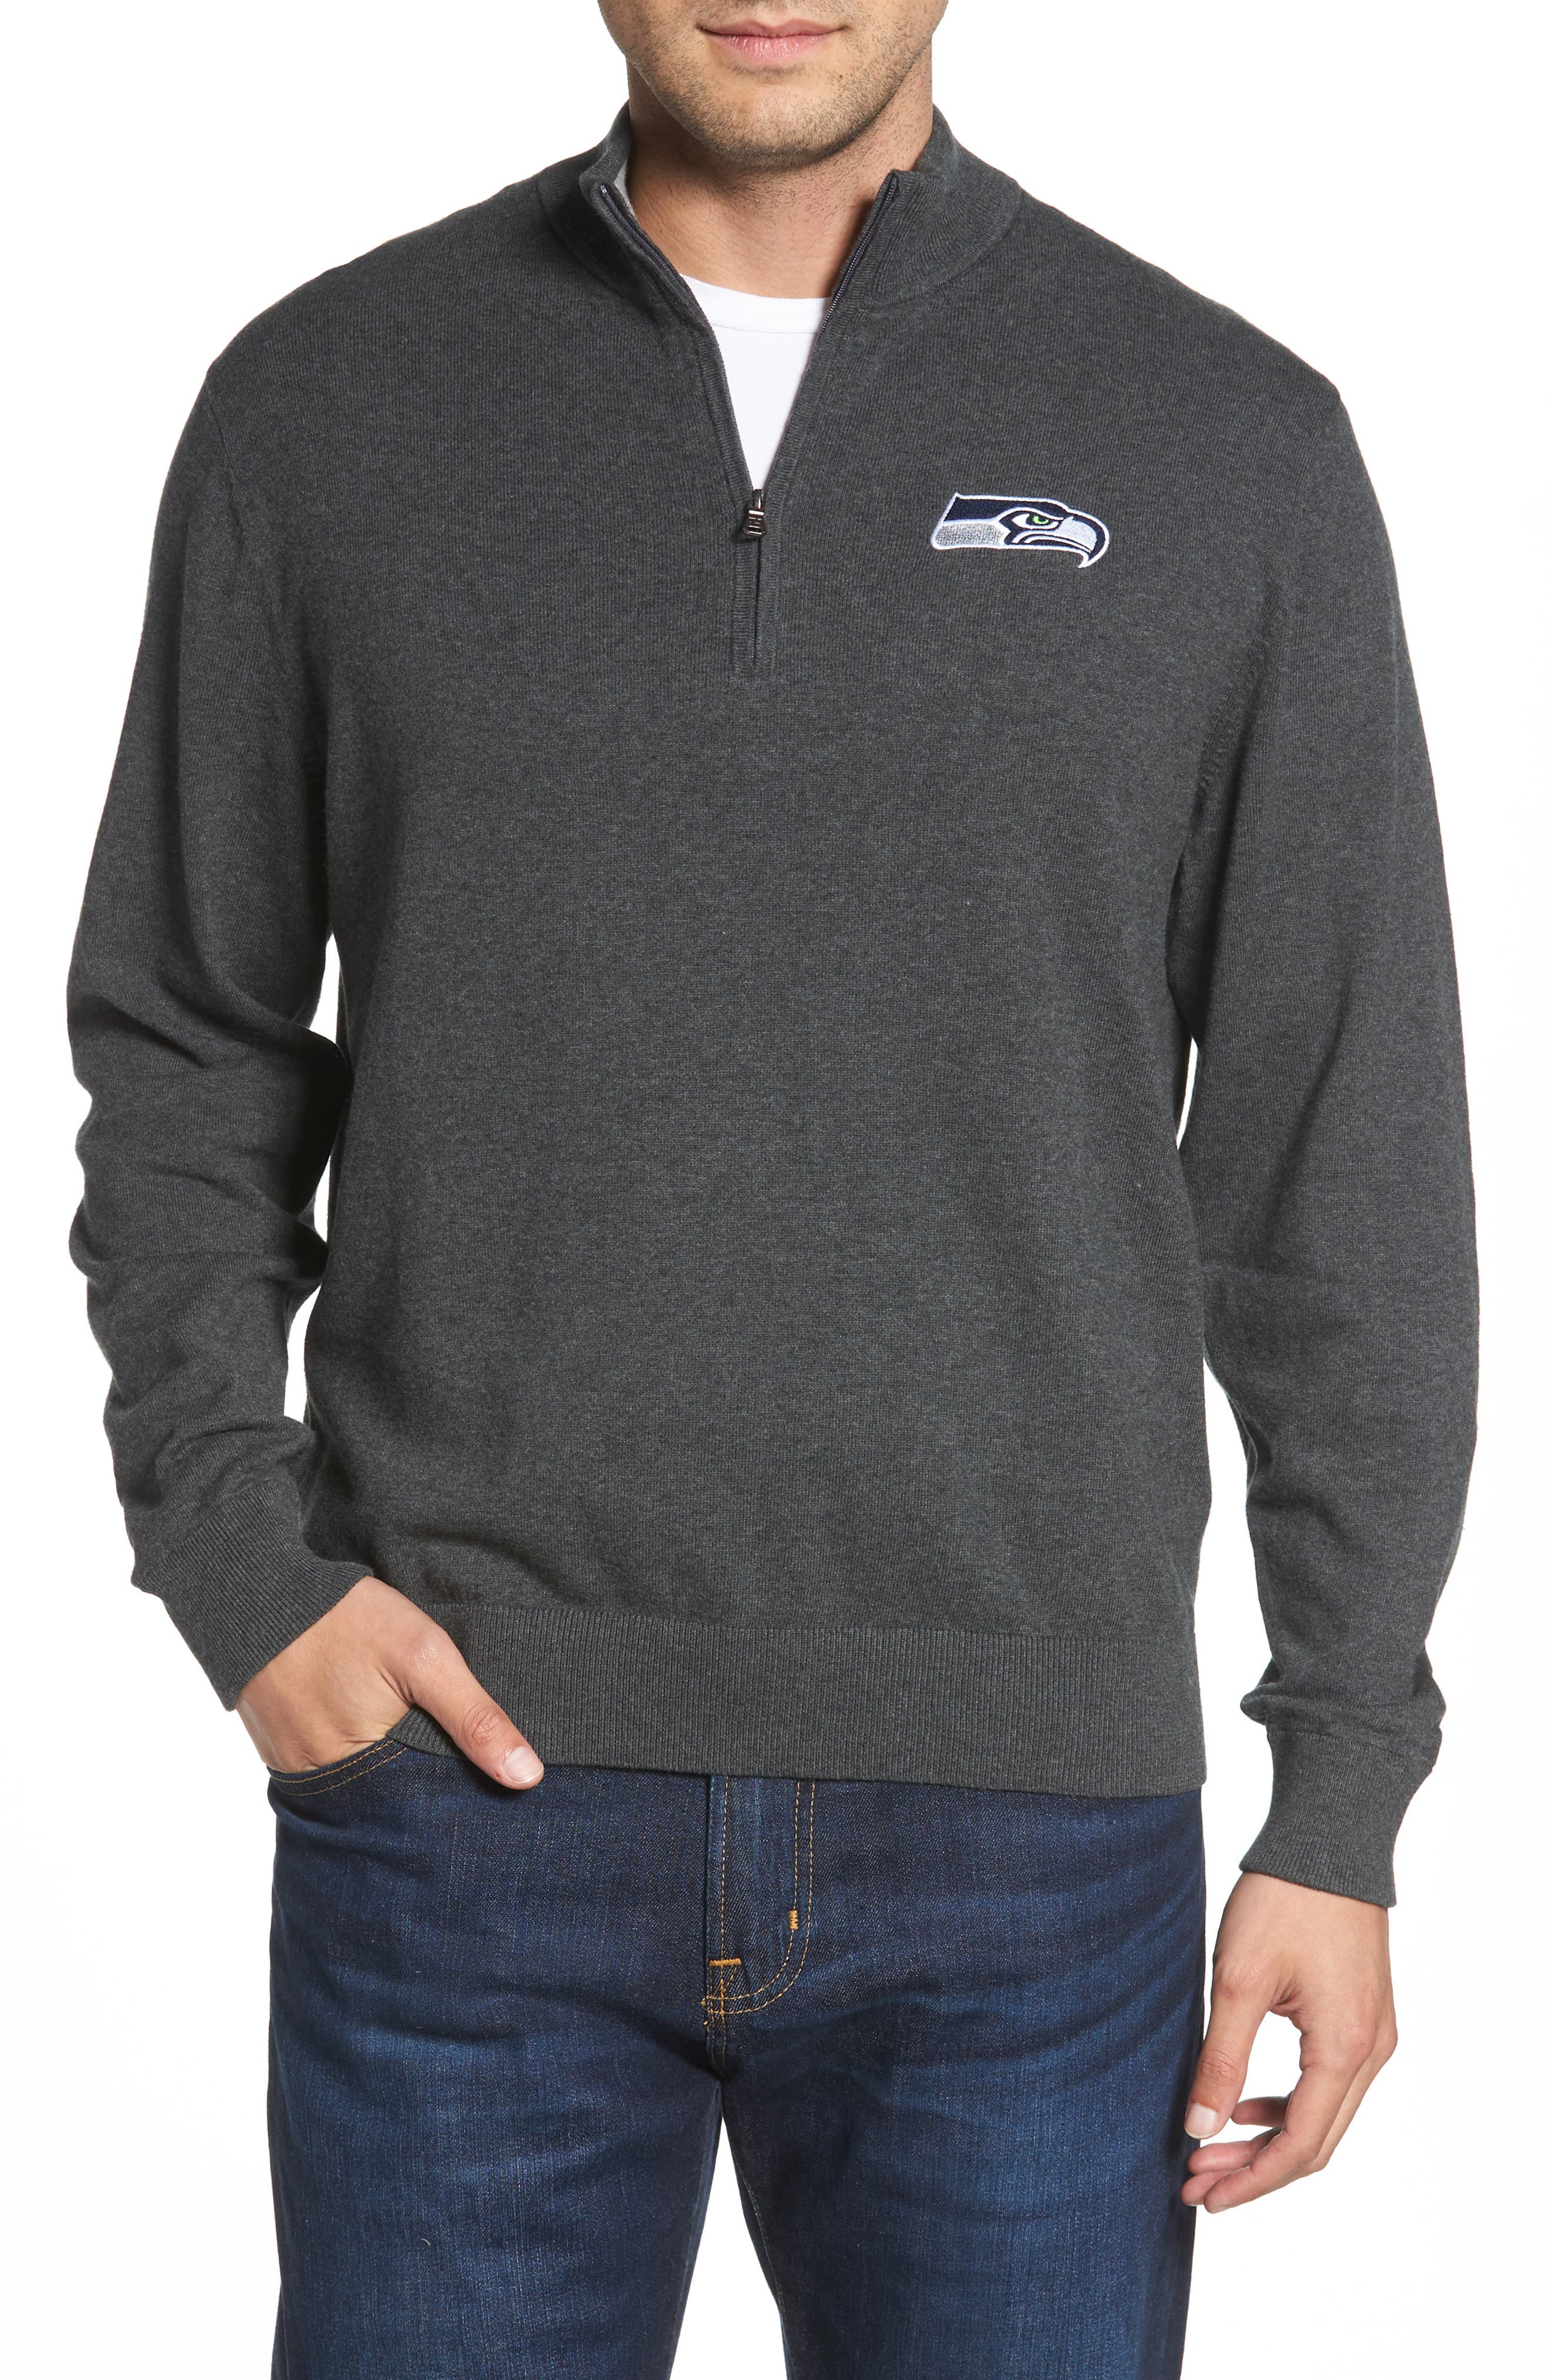 Seattle Seahawks - Lakemont Regular Fit Quarter Zip Sweater,                         Main,                         color, CHARCOAL HEATHER